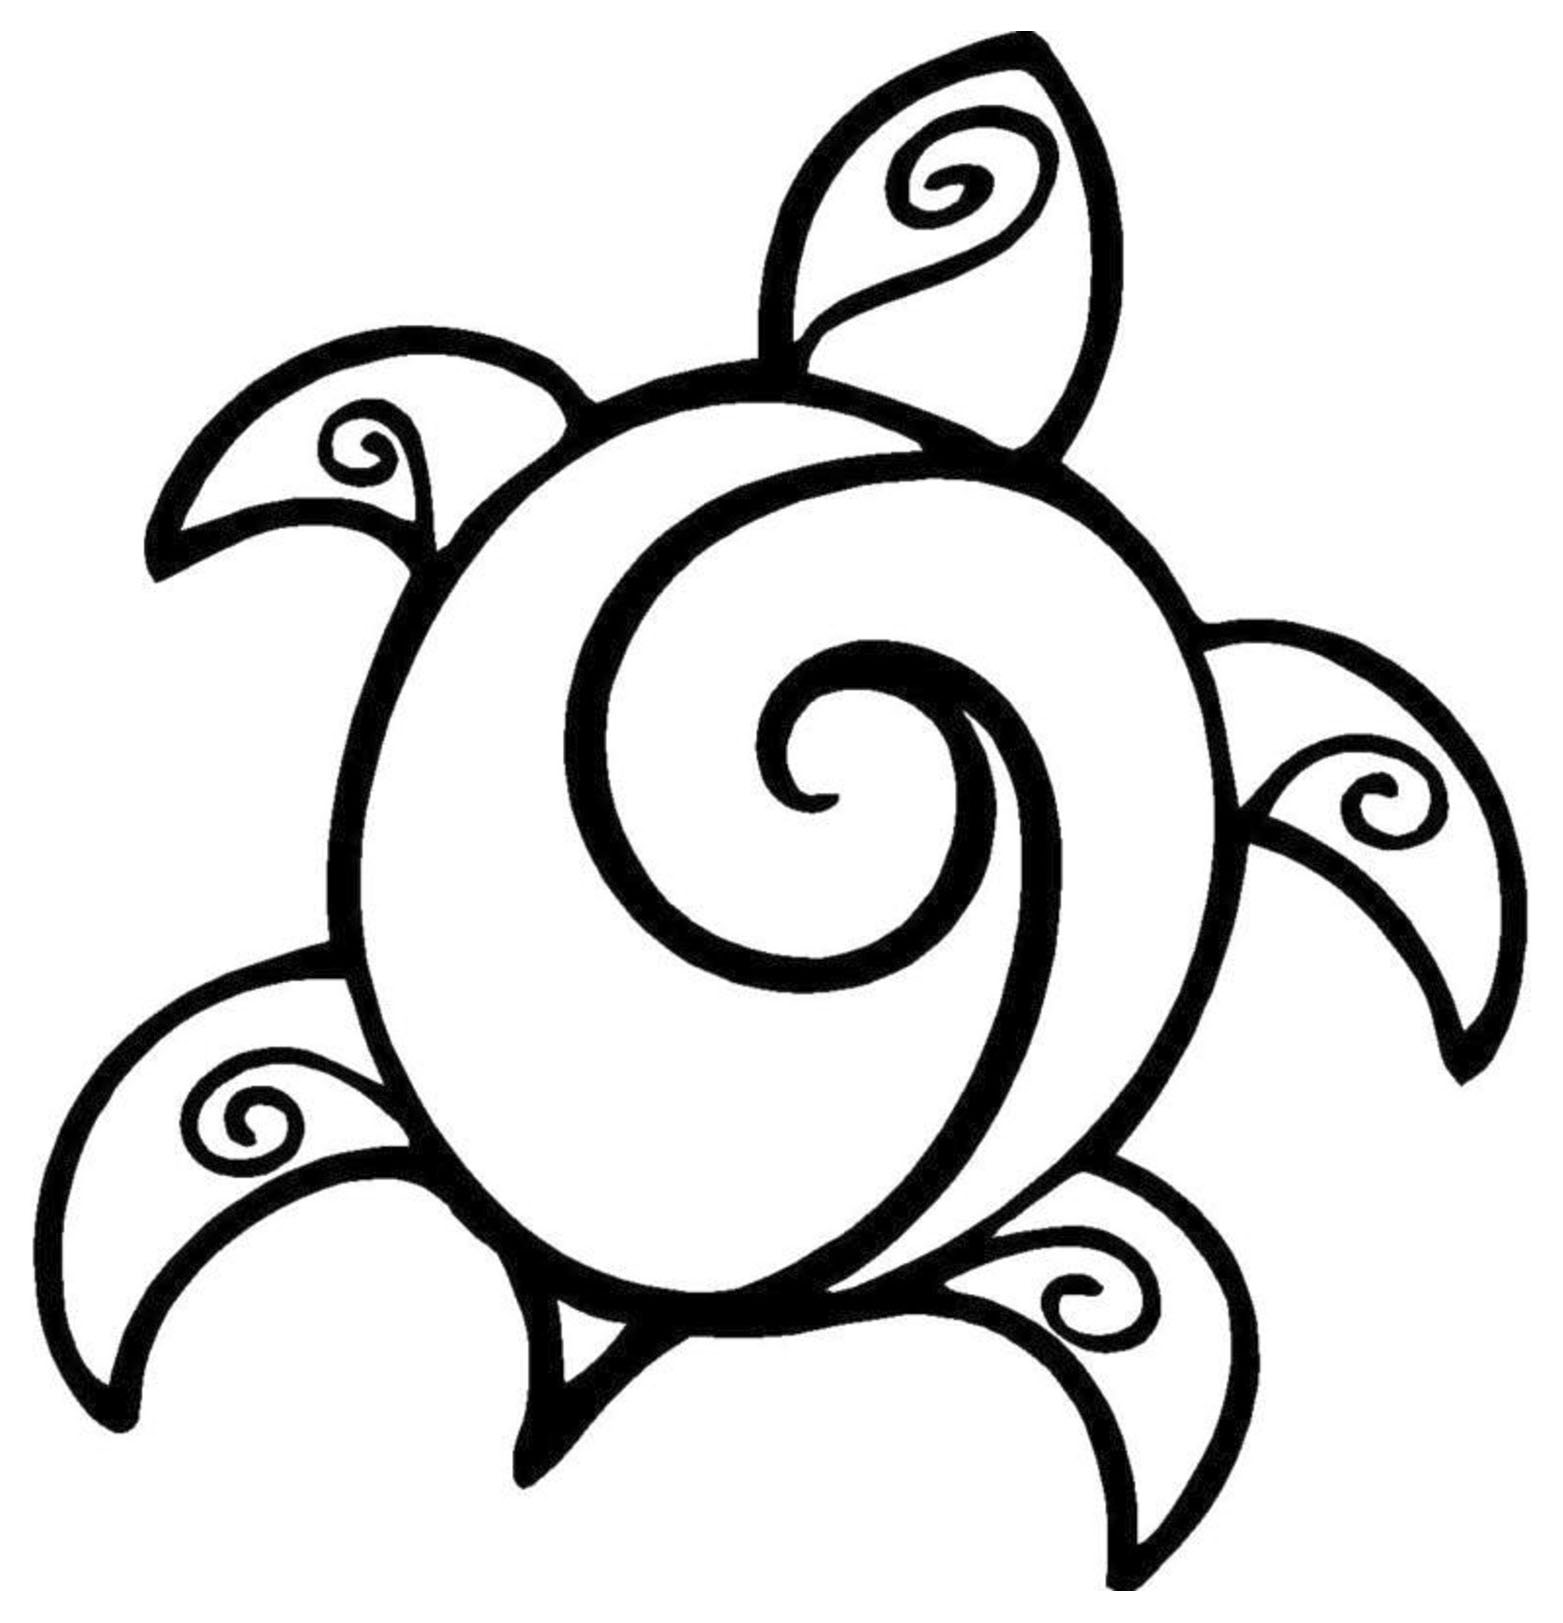 Turtles to download for free - Turtles Kids Coloring Pages